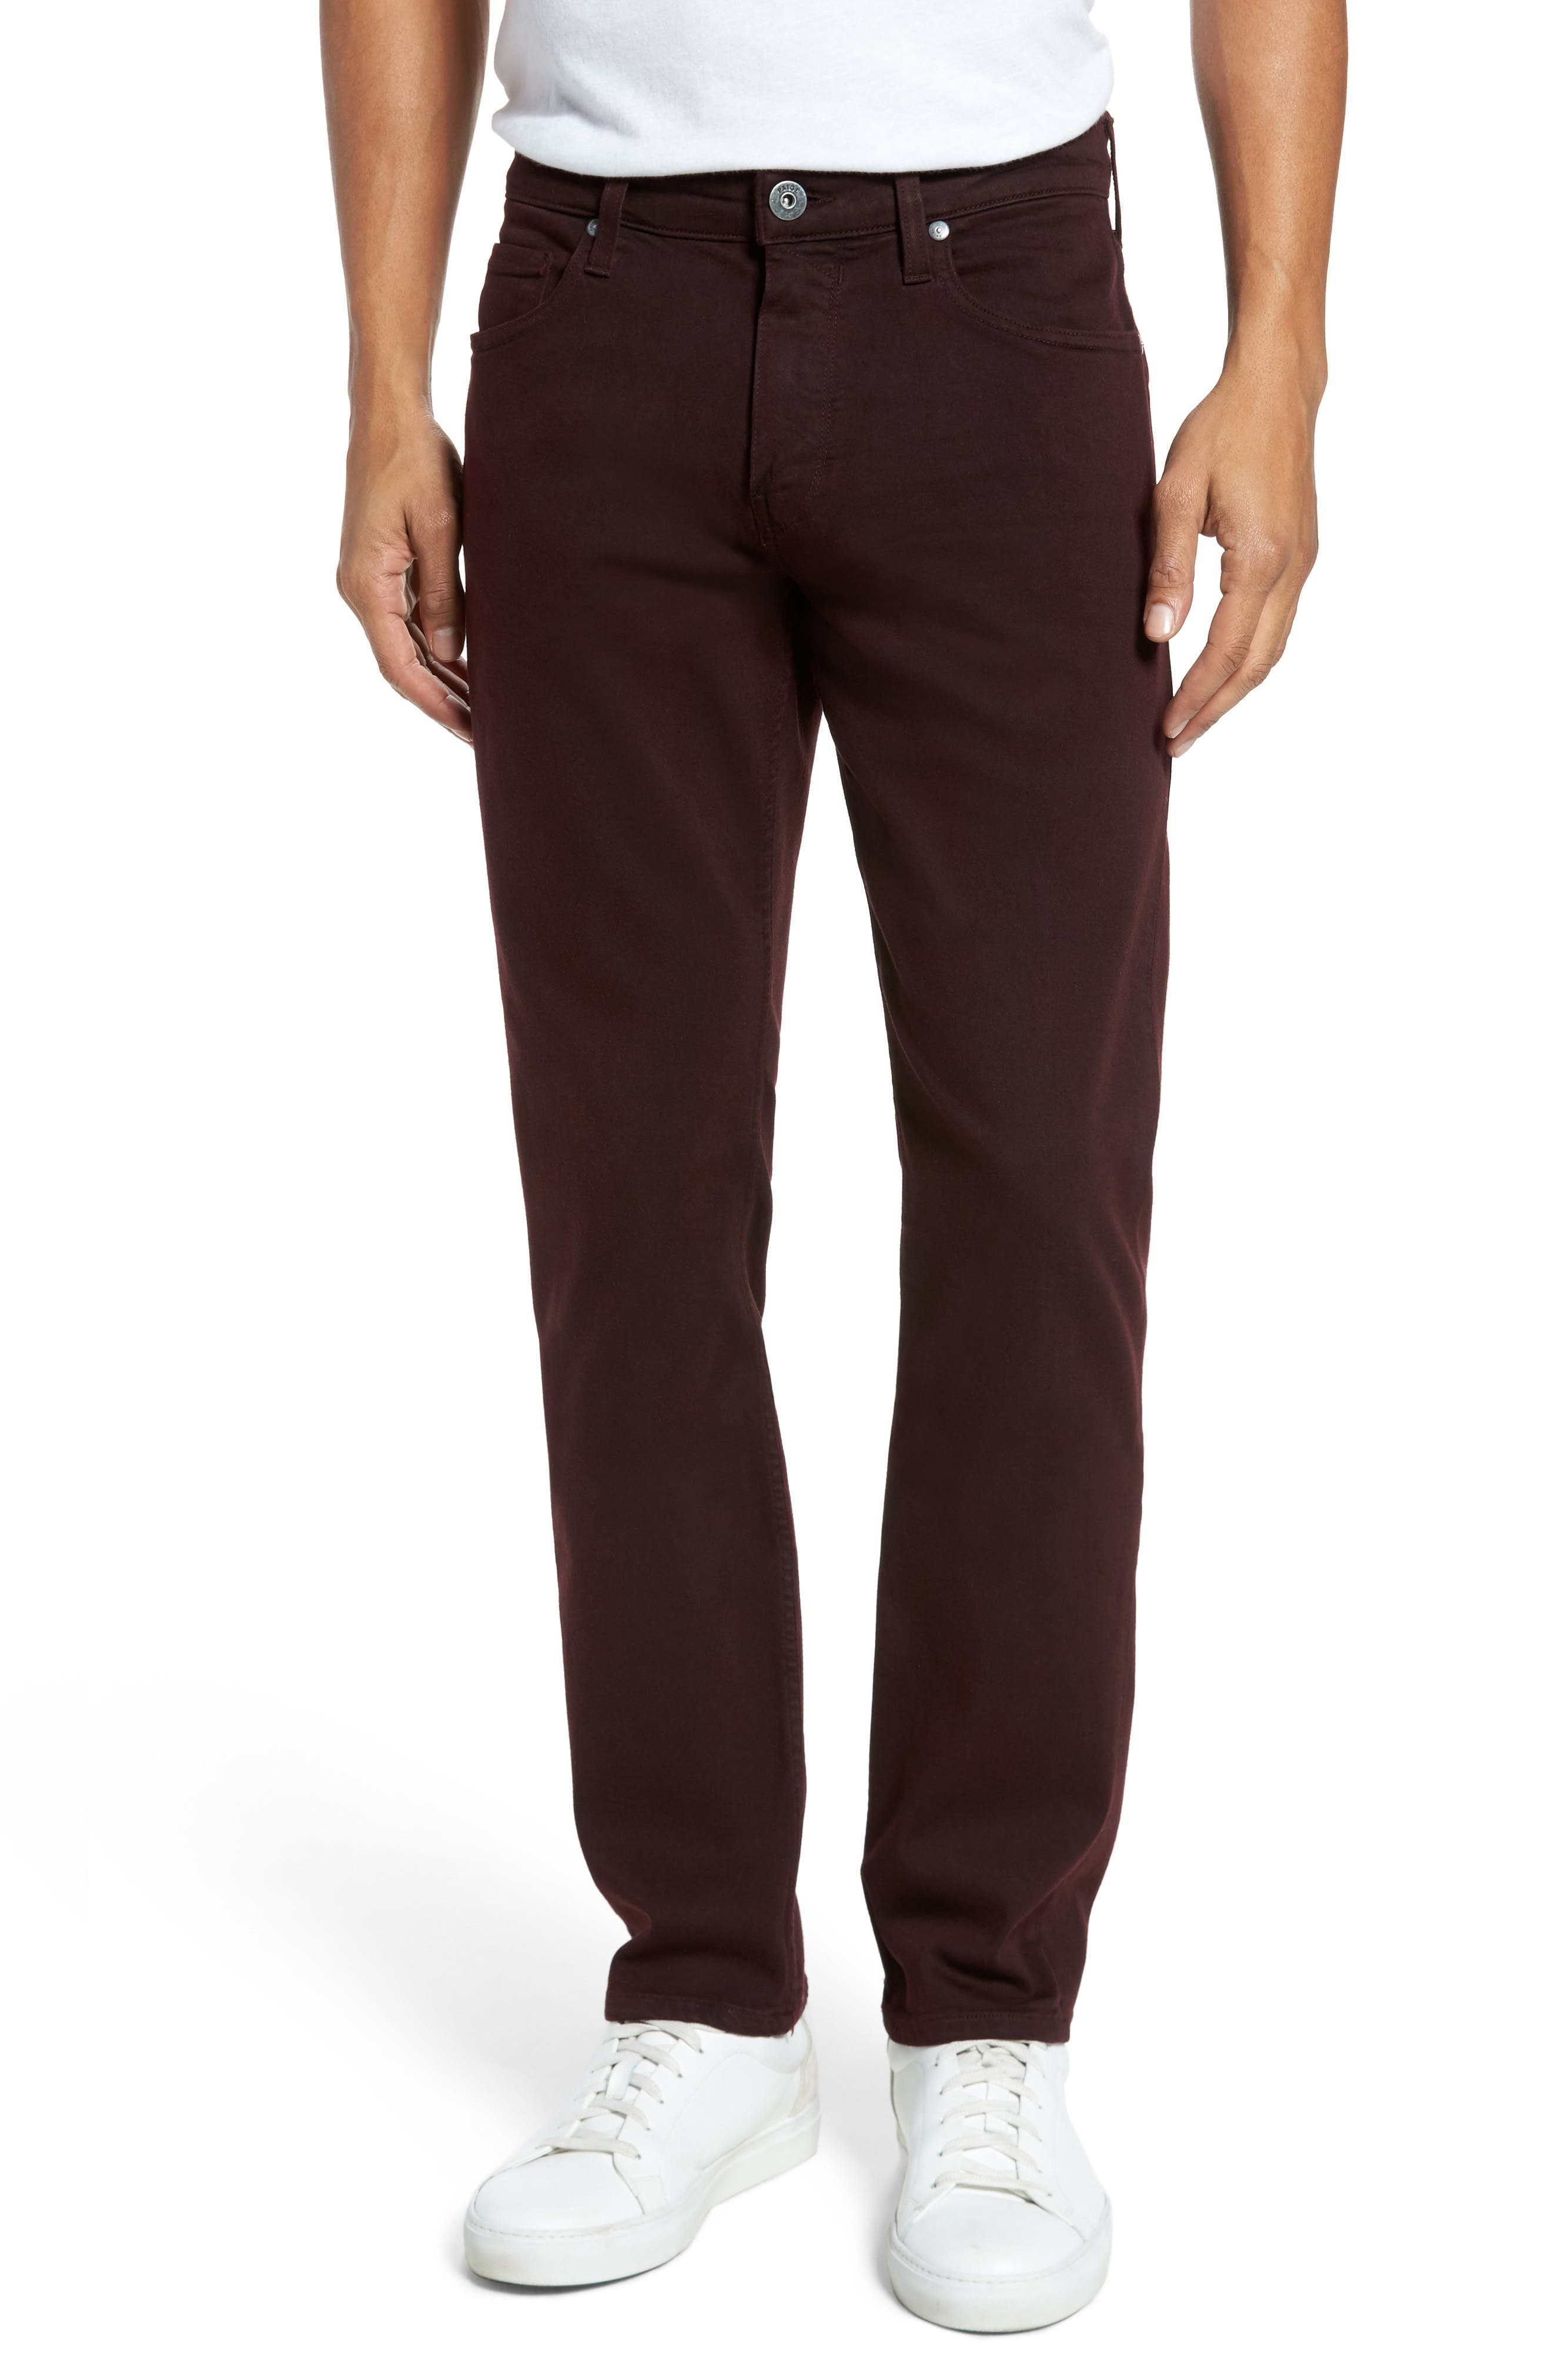 Transcend - Federal Slim Straight Fit Jeans,                             Main thumbnail 1, color,